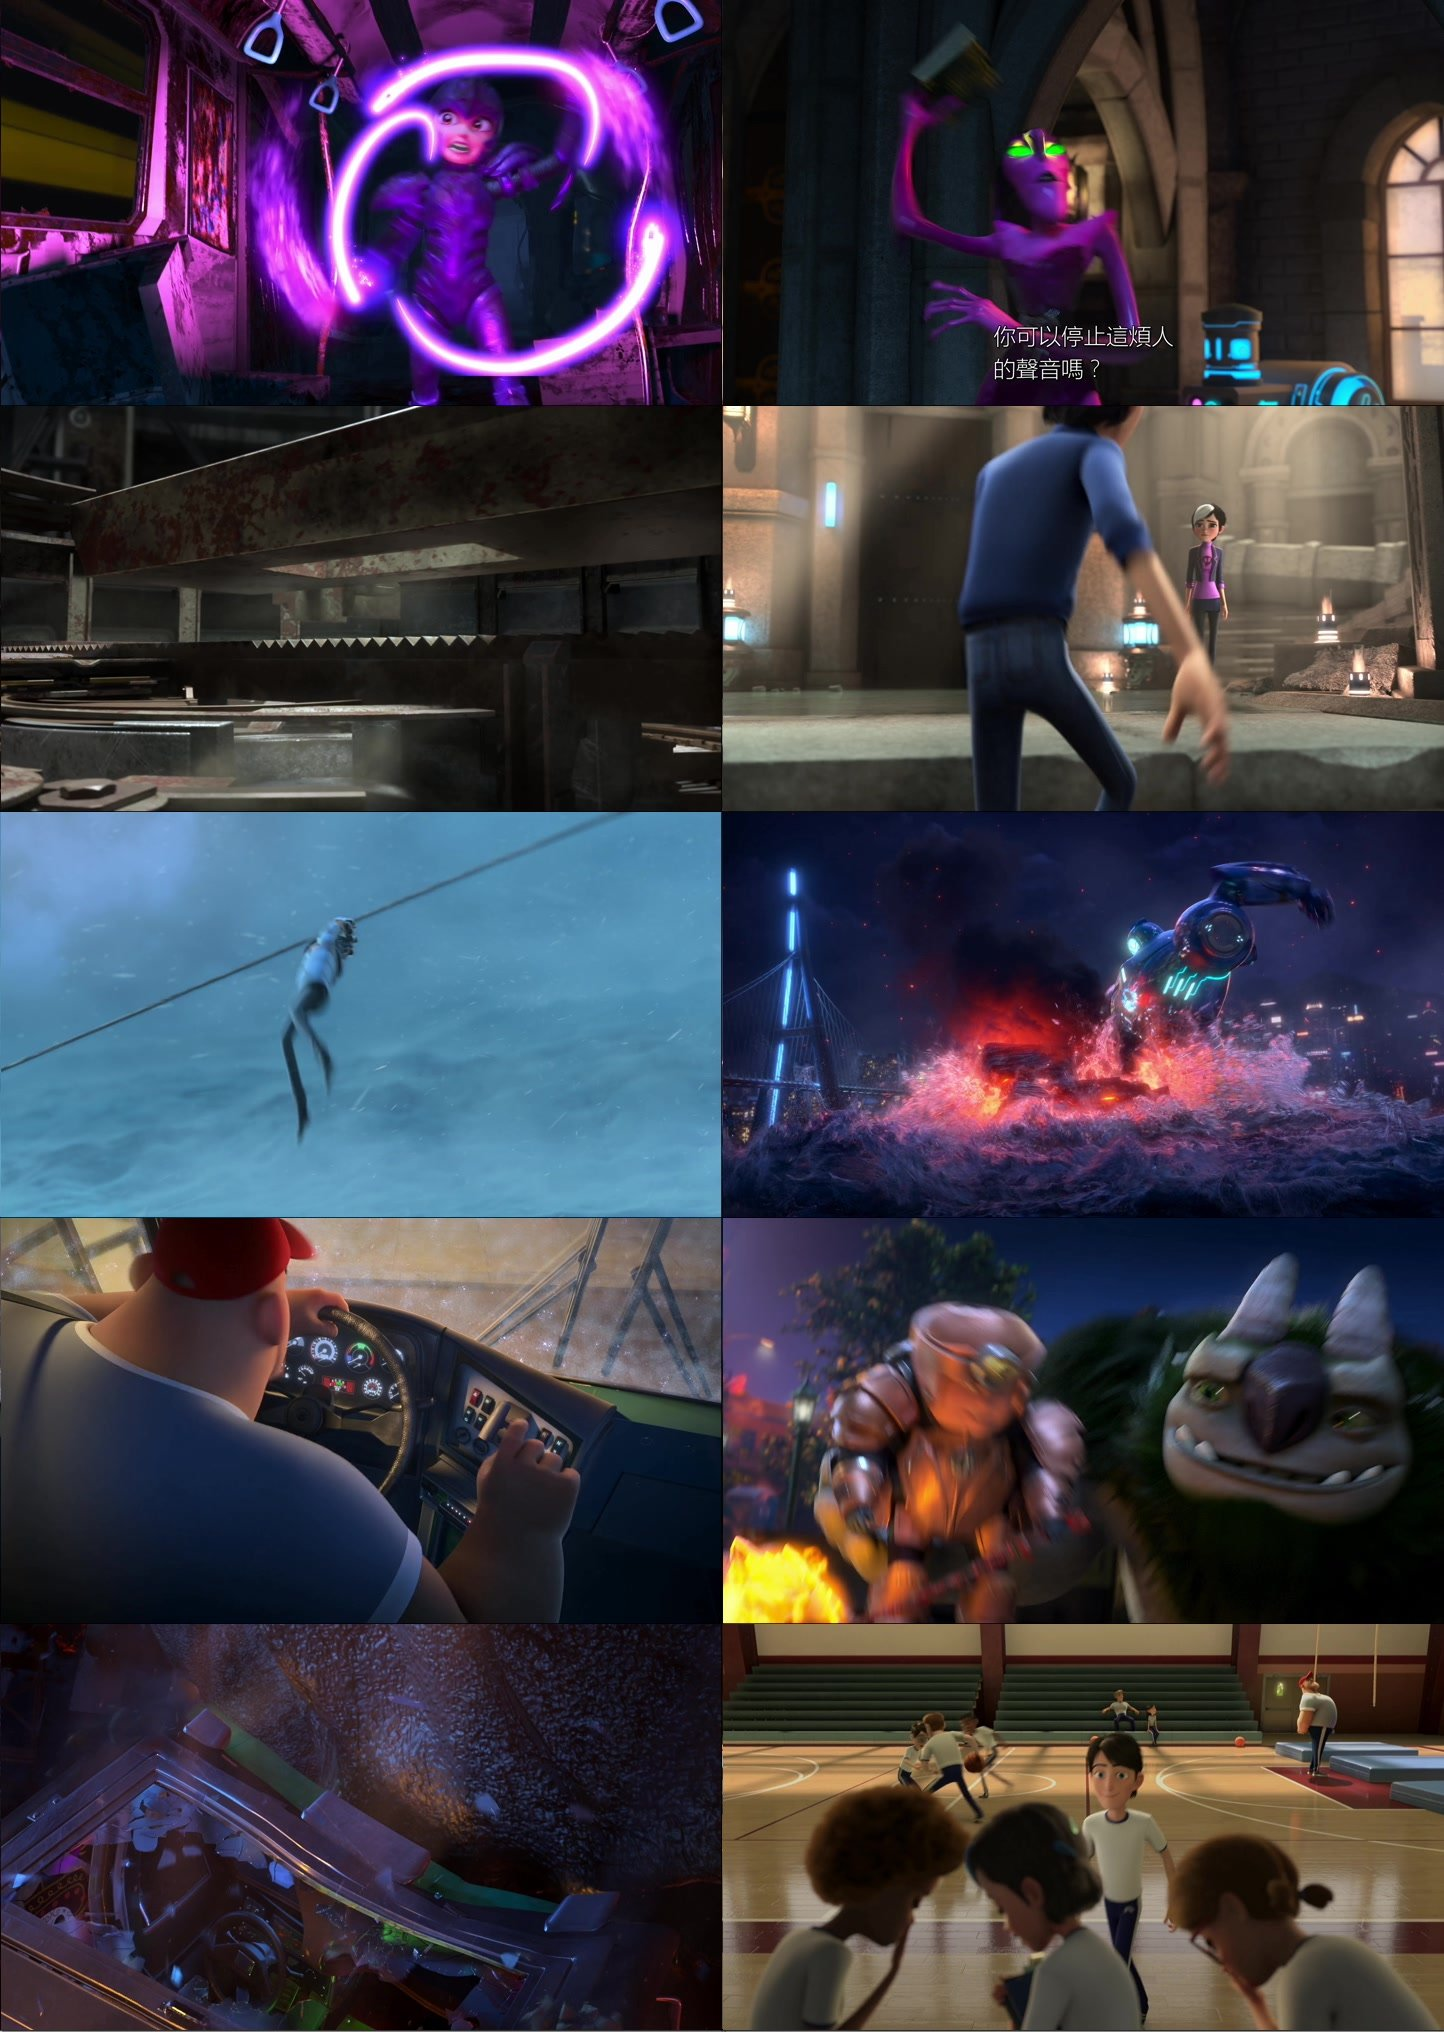 Trollhunters.Rise.of.the.Titans.2021.1080p.NF.WEB-DL.DDP5.1.Atmos.H.264-TEPES.mkv